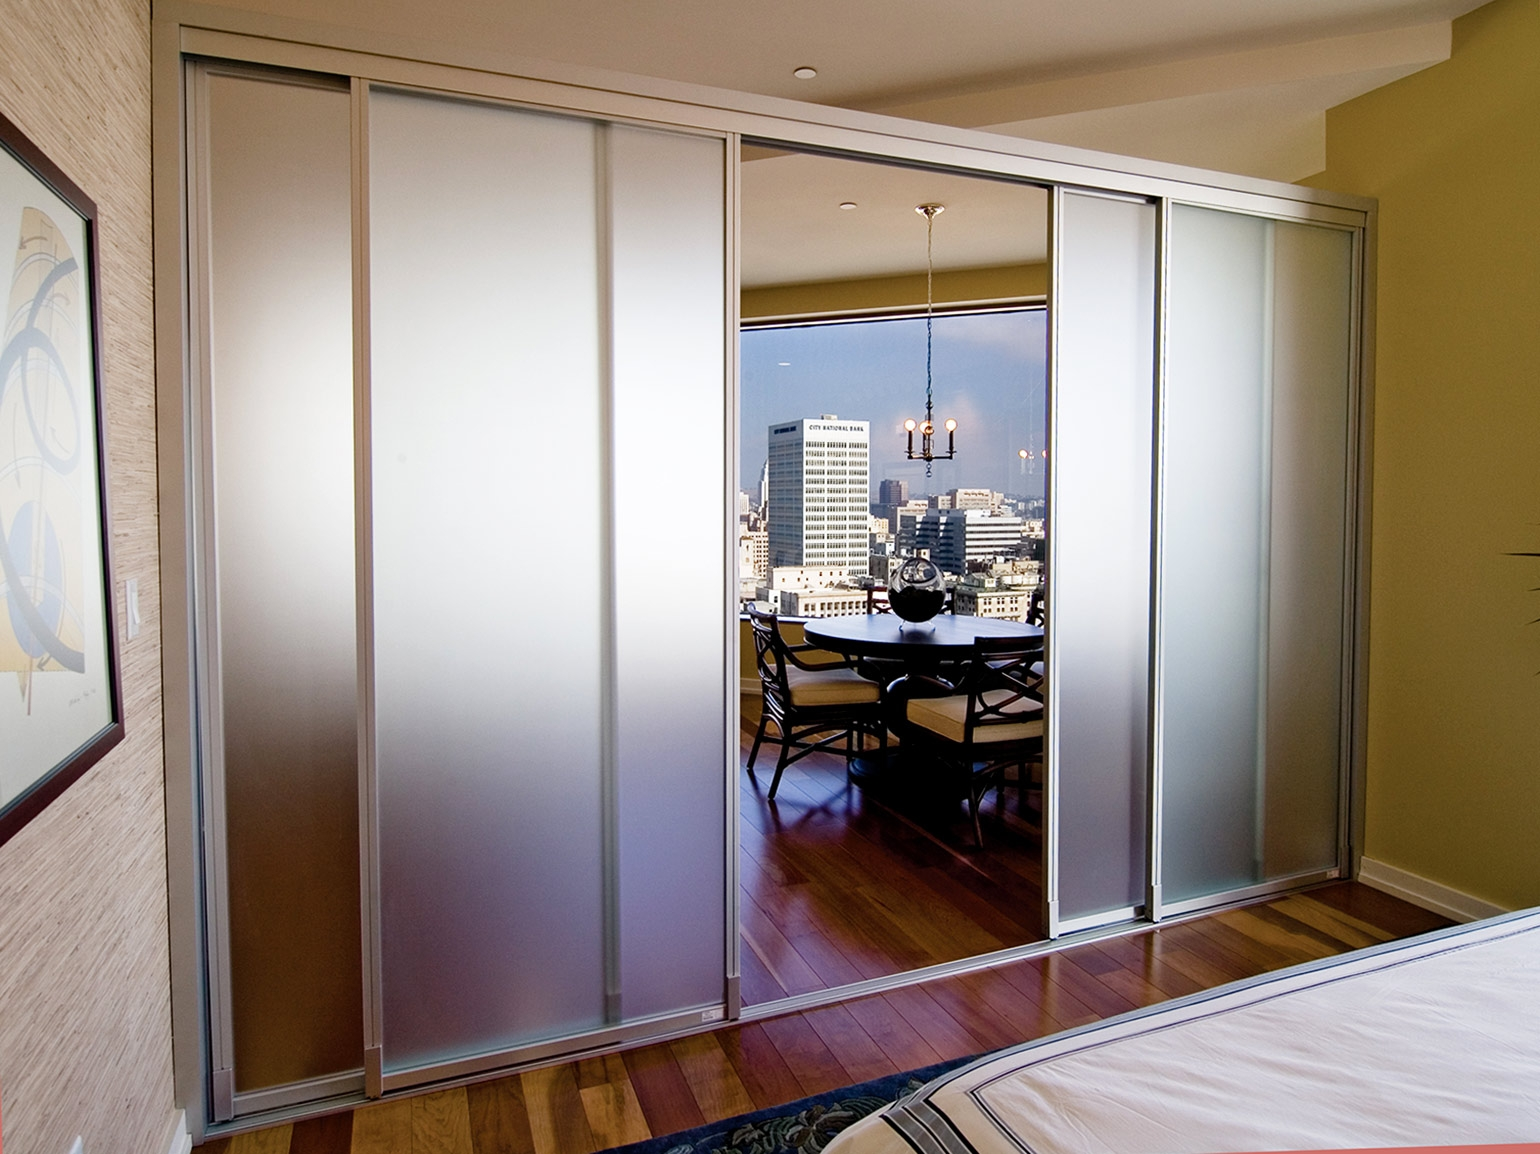 Sliding Glass Doors Room Dividersglass room dividers wfrosted glass